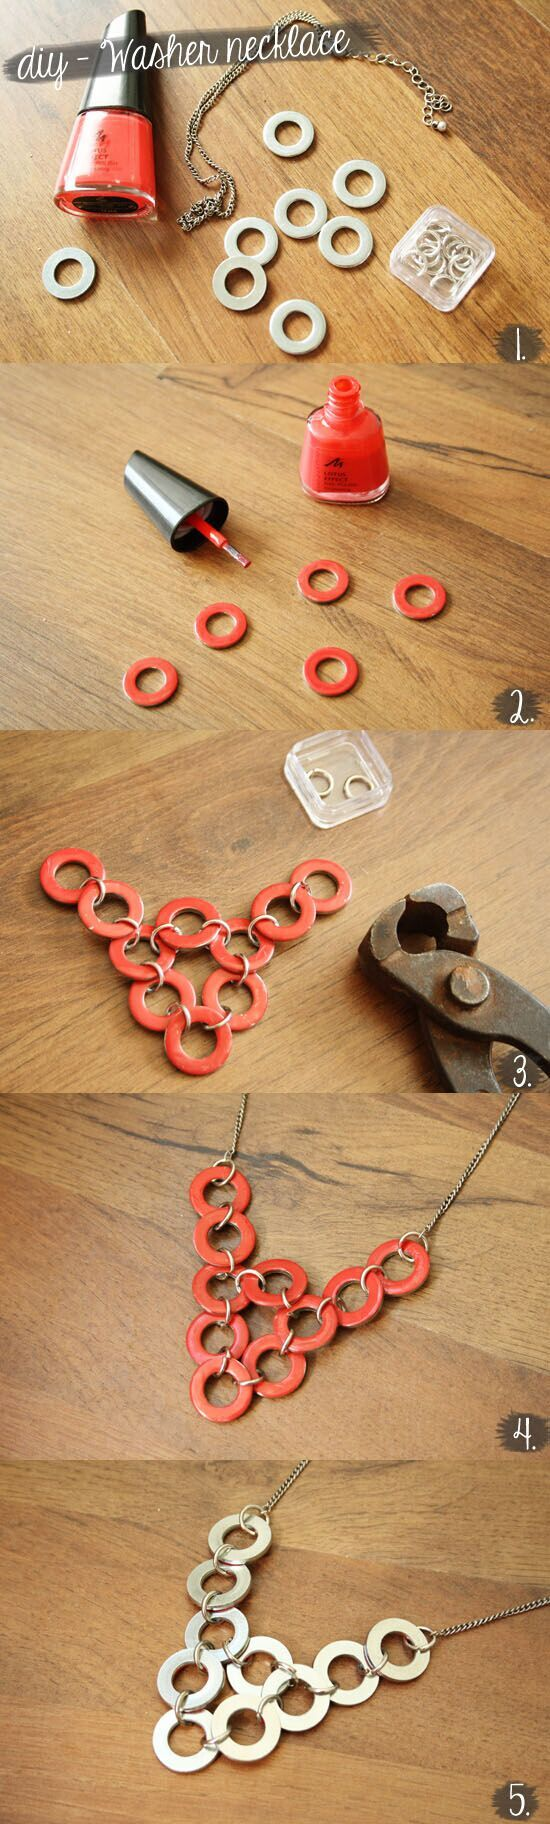 DIY- Washer Necklace